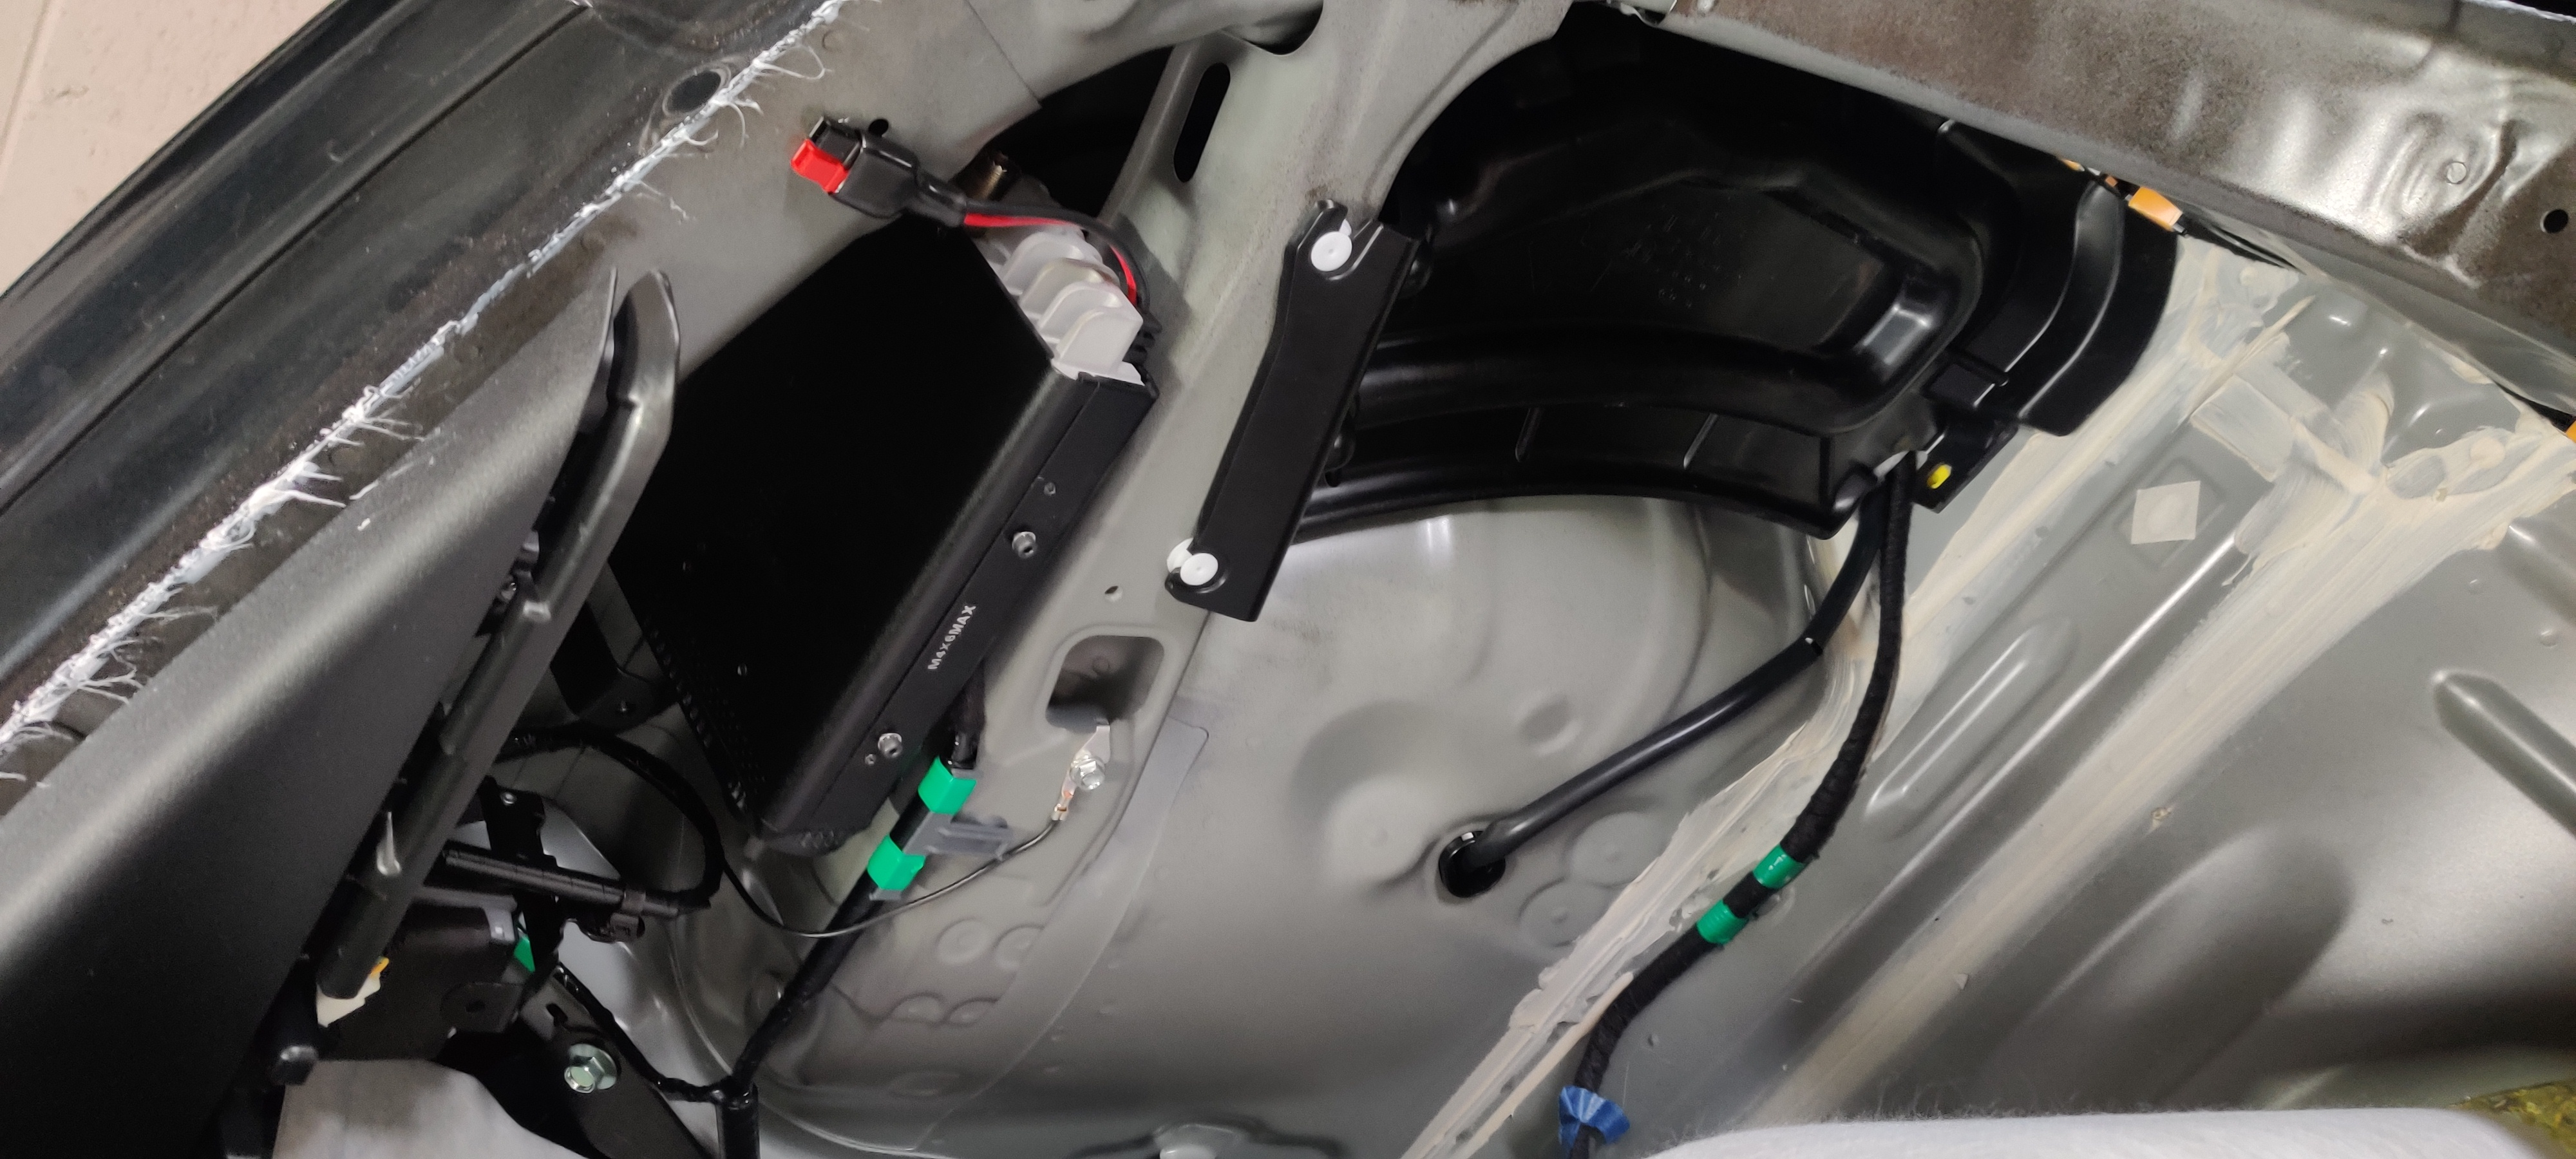 FT-857D mounted, with bonus appearance of soundproofing plug for interstitial space.